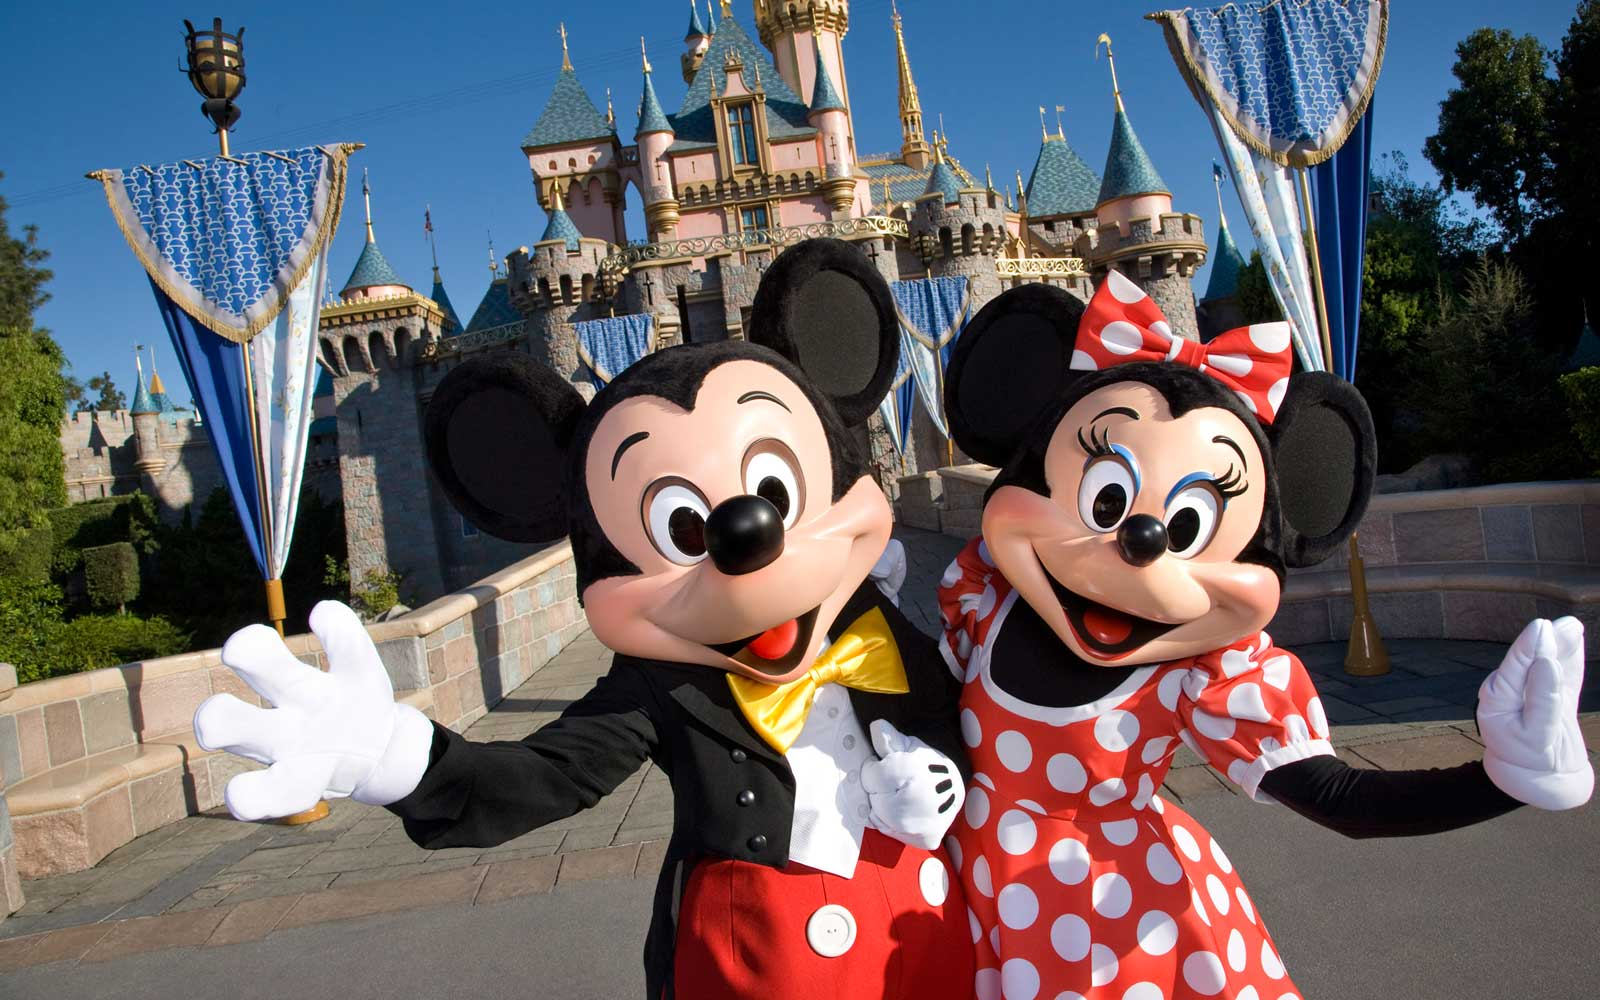 Mickey Mouse and Minnie Mouse at Disneyland Castle